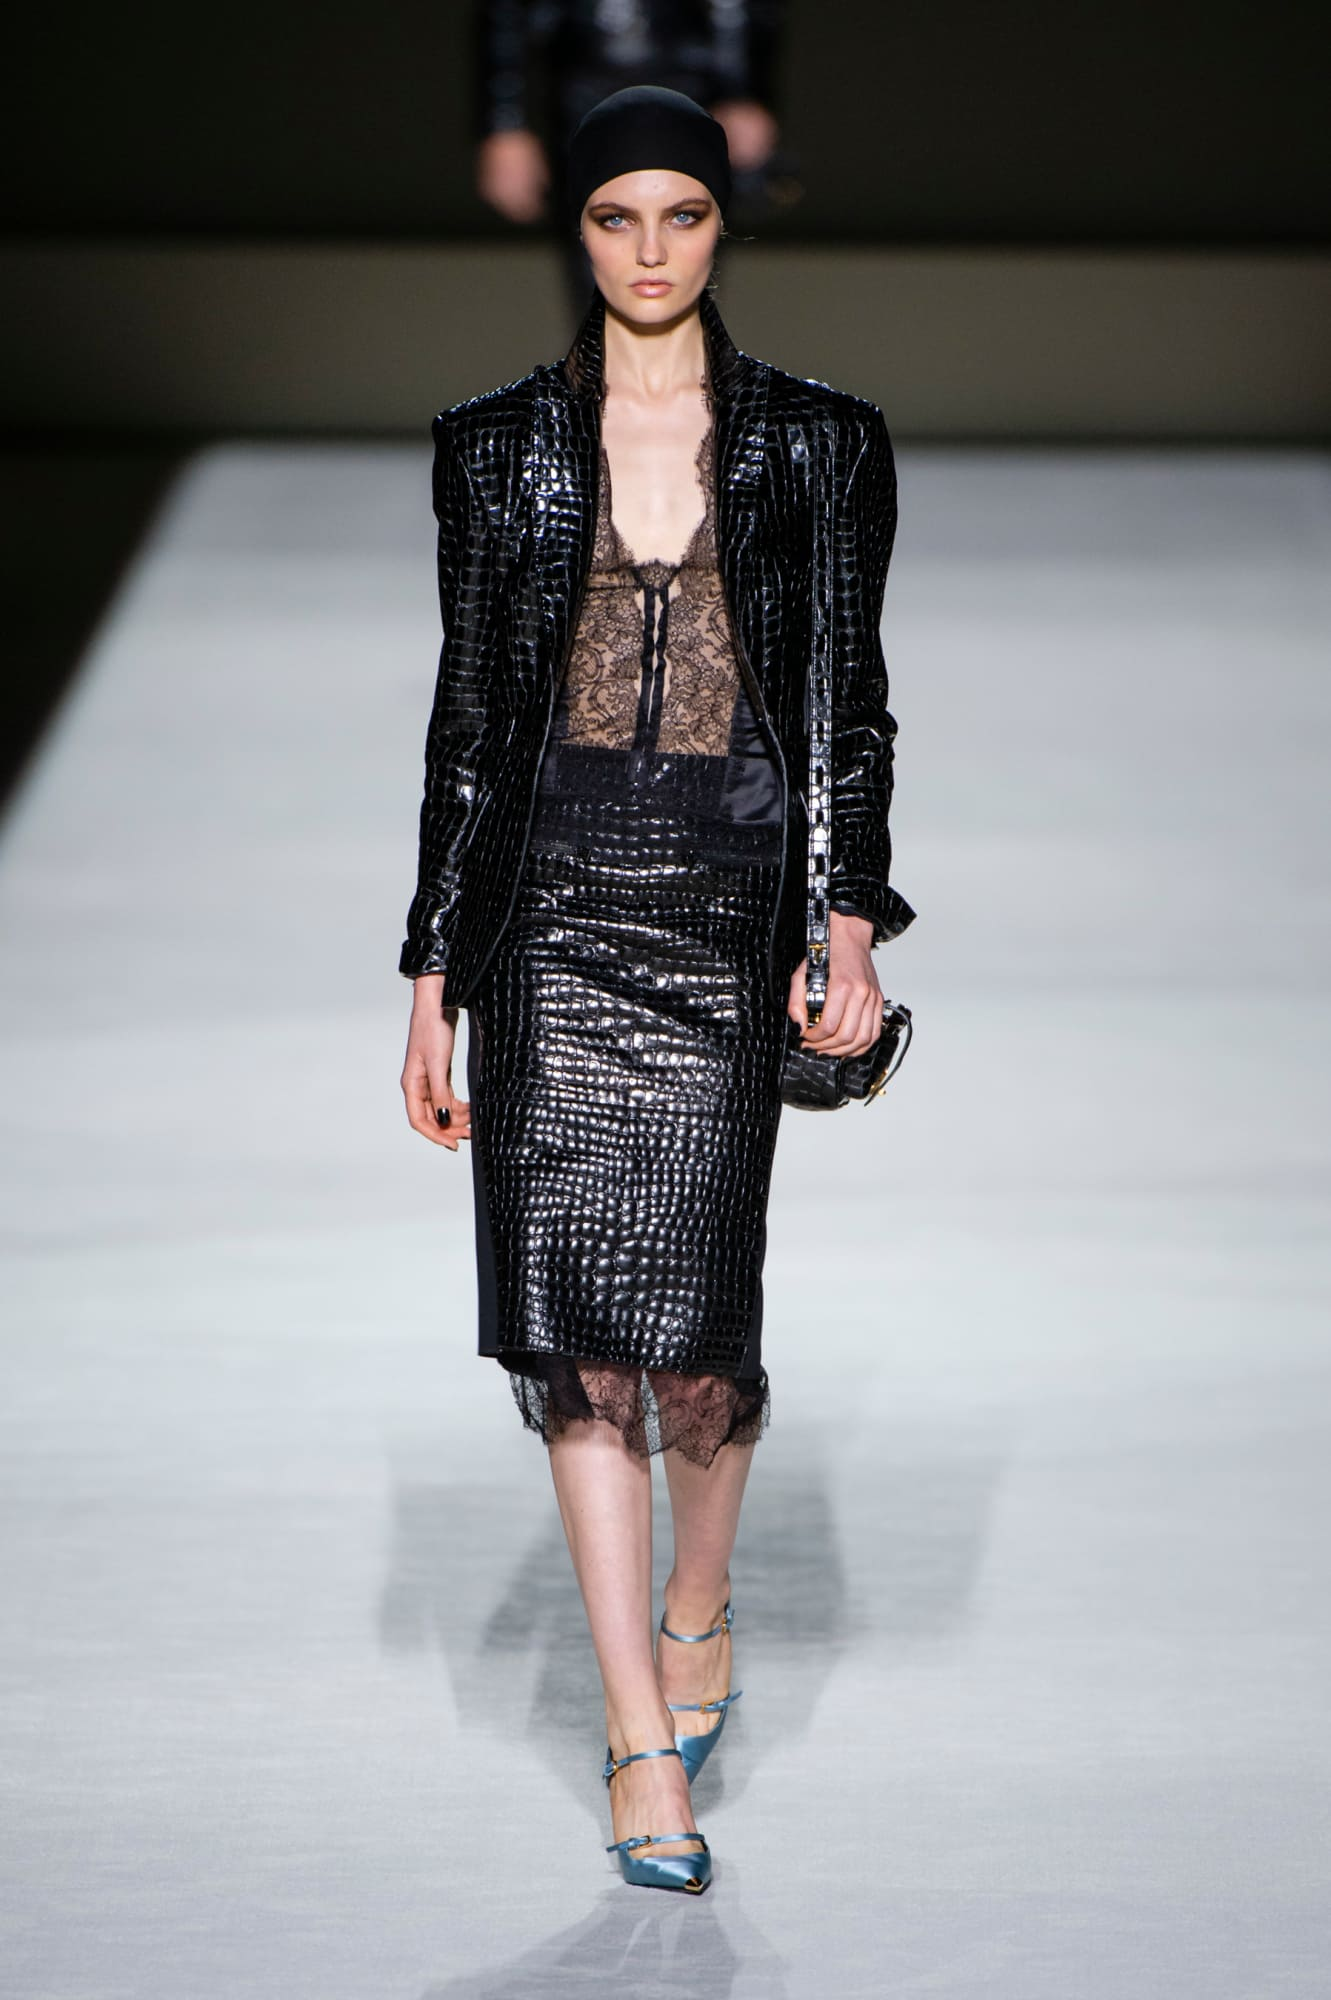 Tom Ford spring 2019 collection, leather, women's animal skin leather blazer and skirt with black lace hem